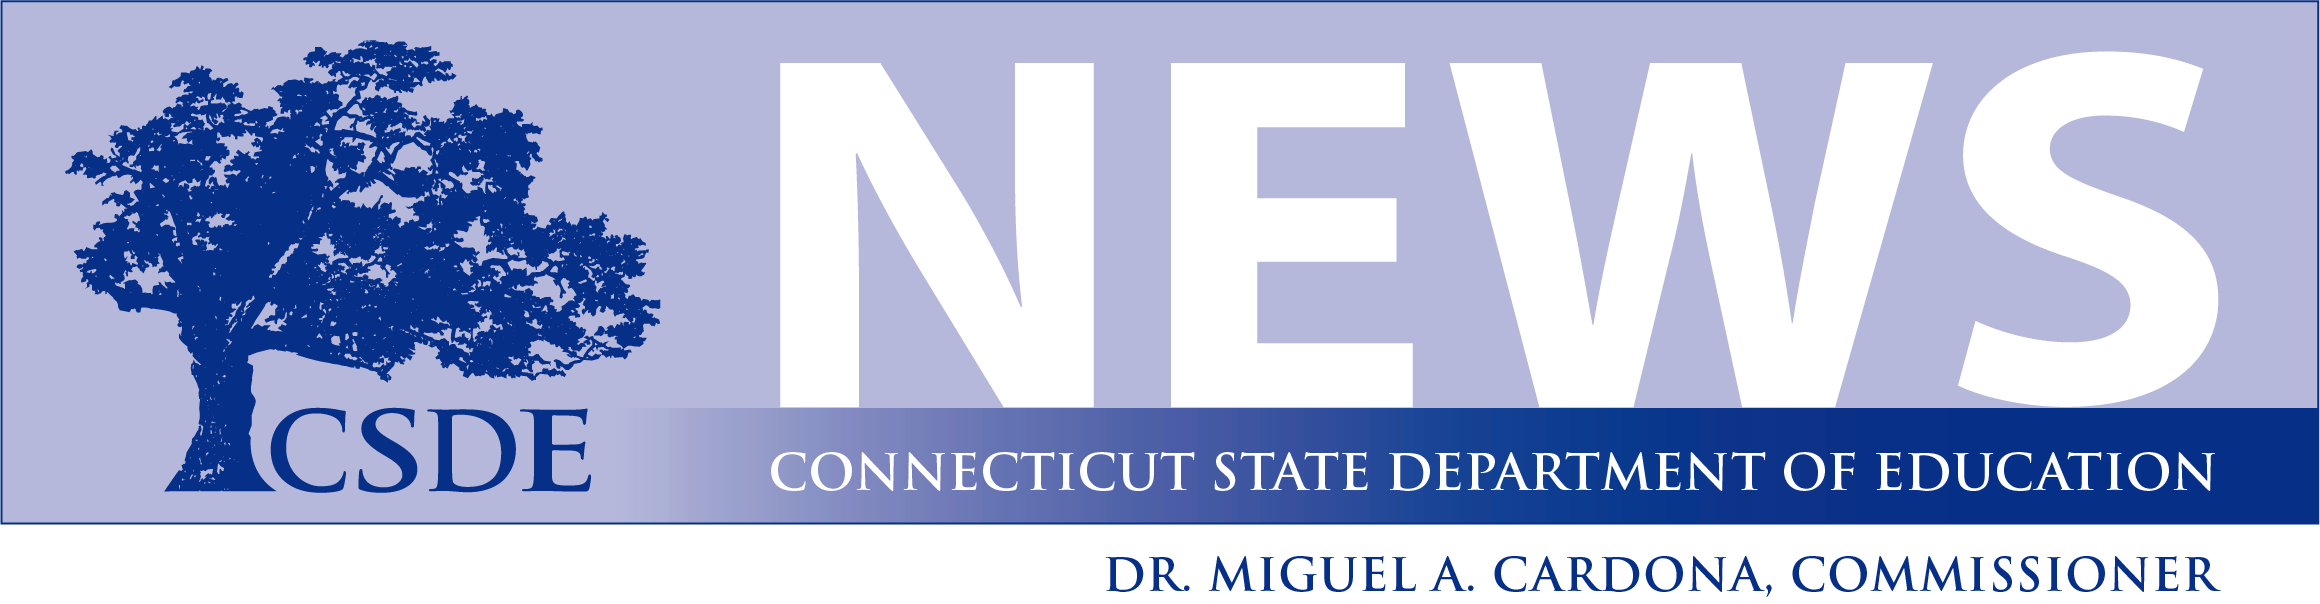 Connecticut State Department of Education News